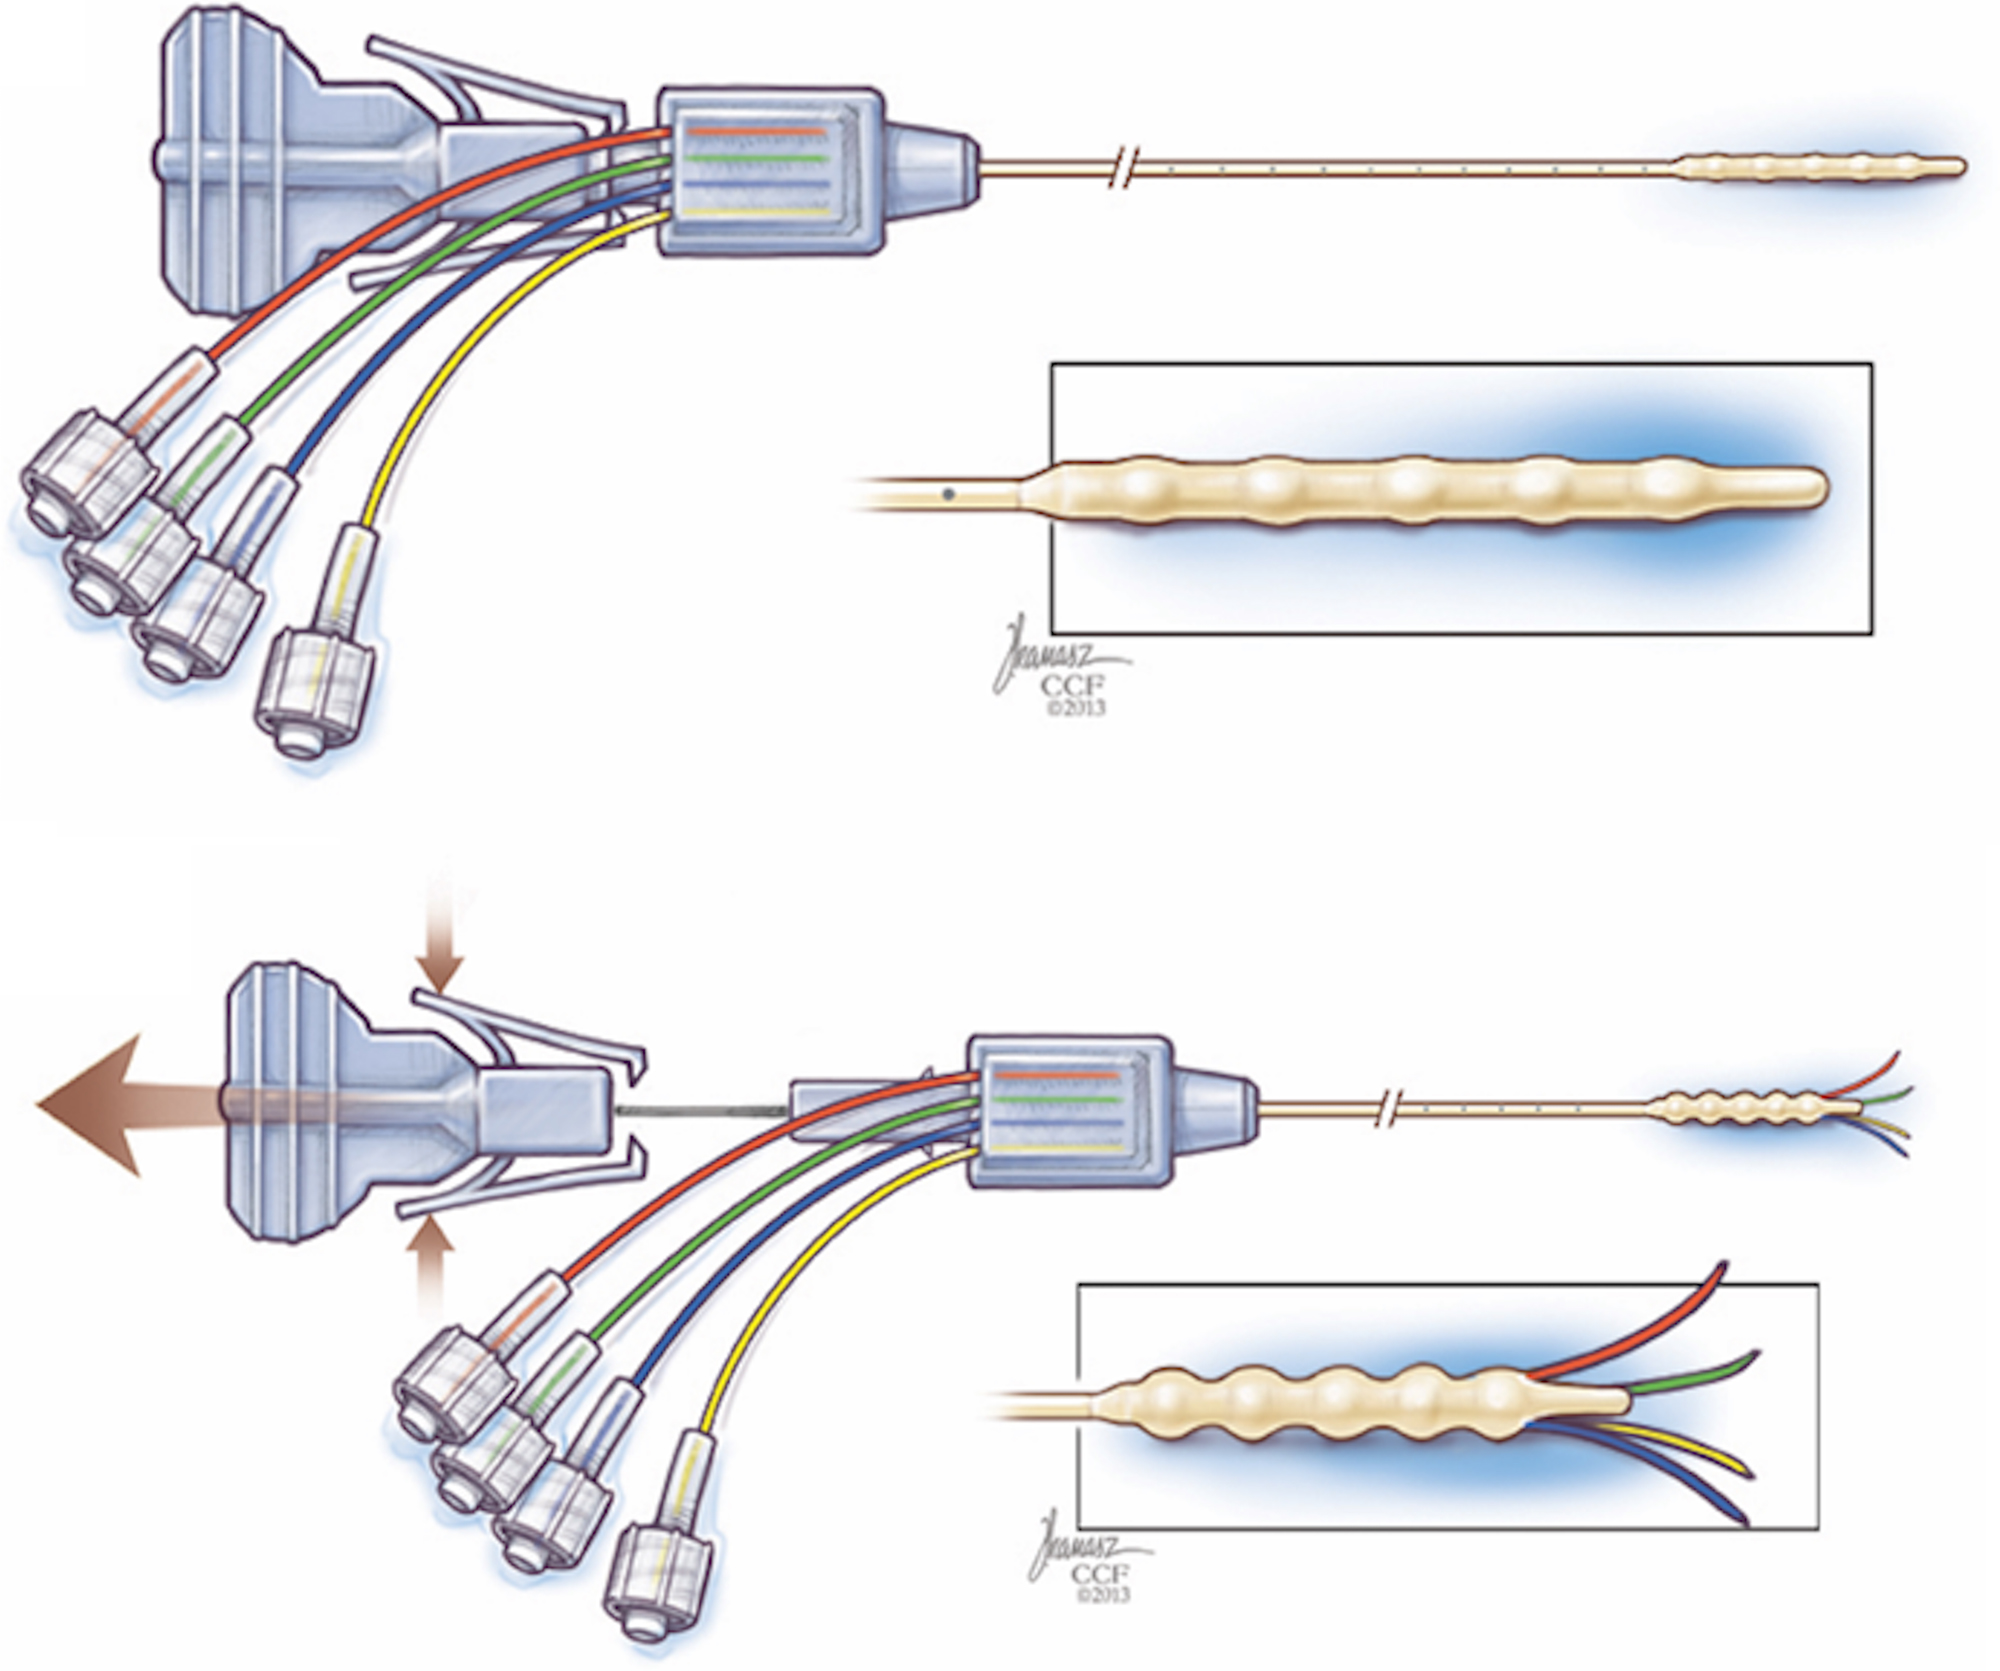 First In Human Evaluation Of The Cleveland Multiport Catheter For Steven Mark Diagram Wiring Fig 1